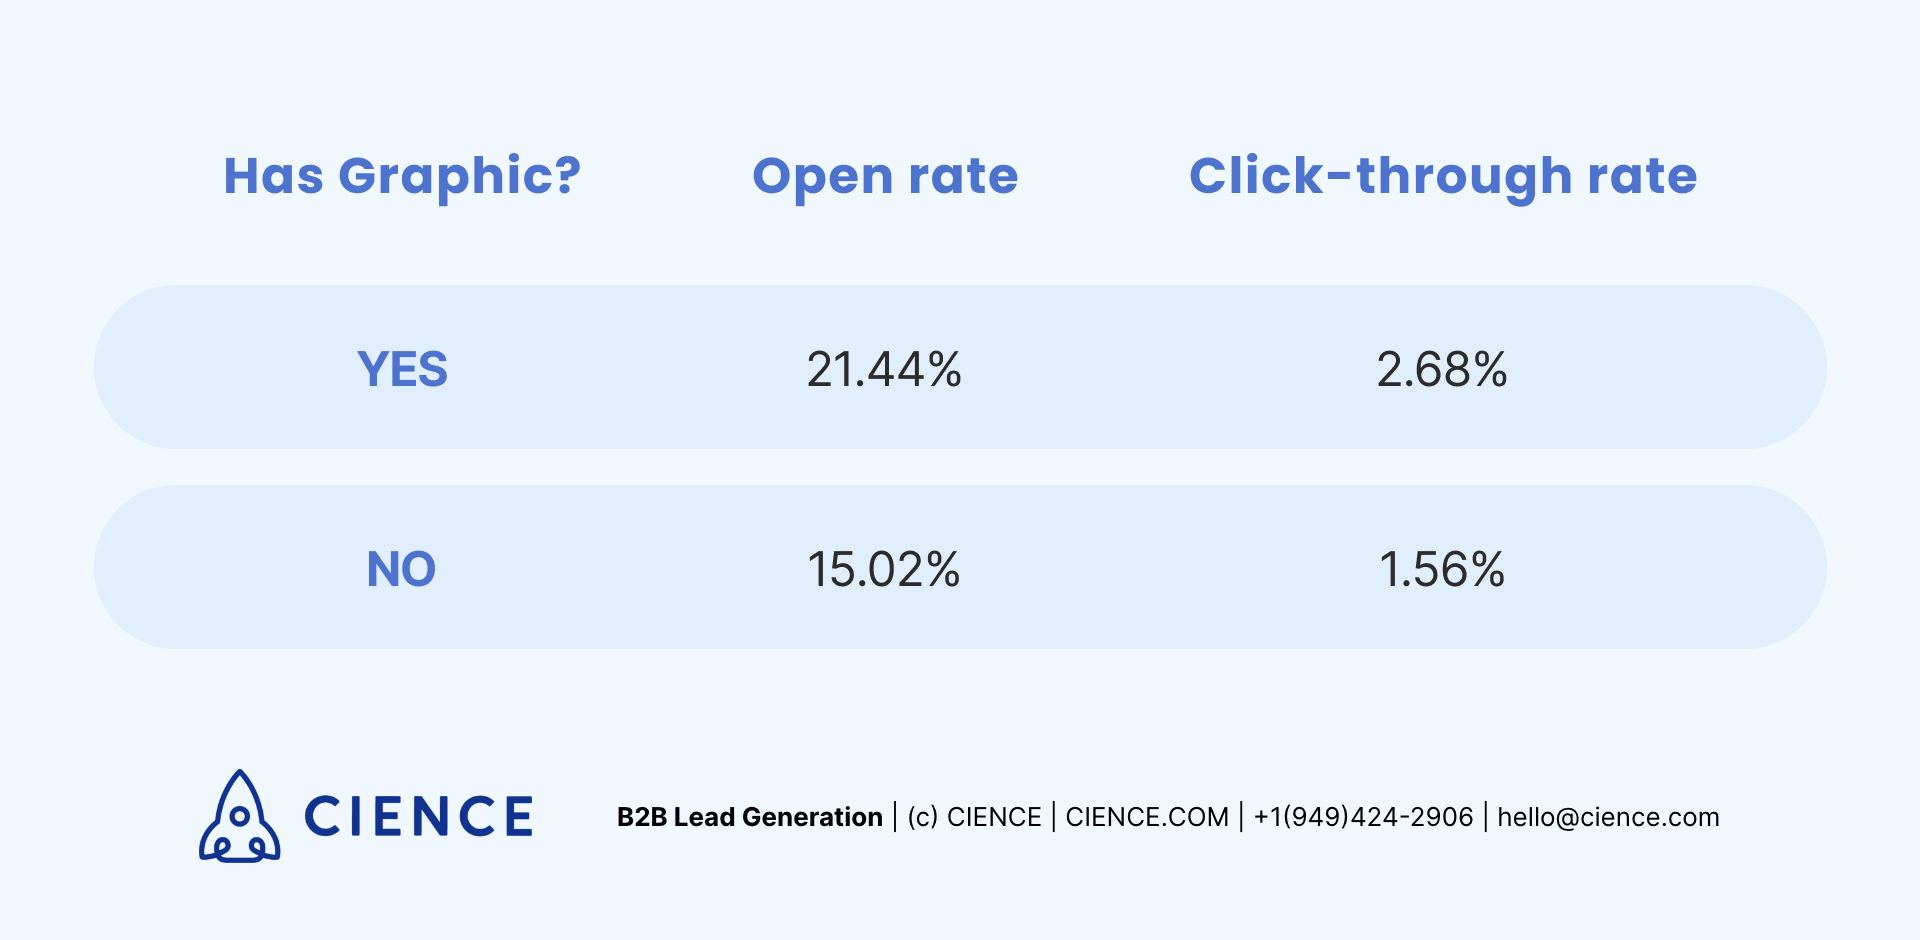 How using graphics in email influences open rate and click-through rate